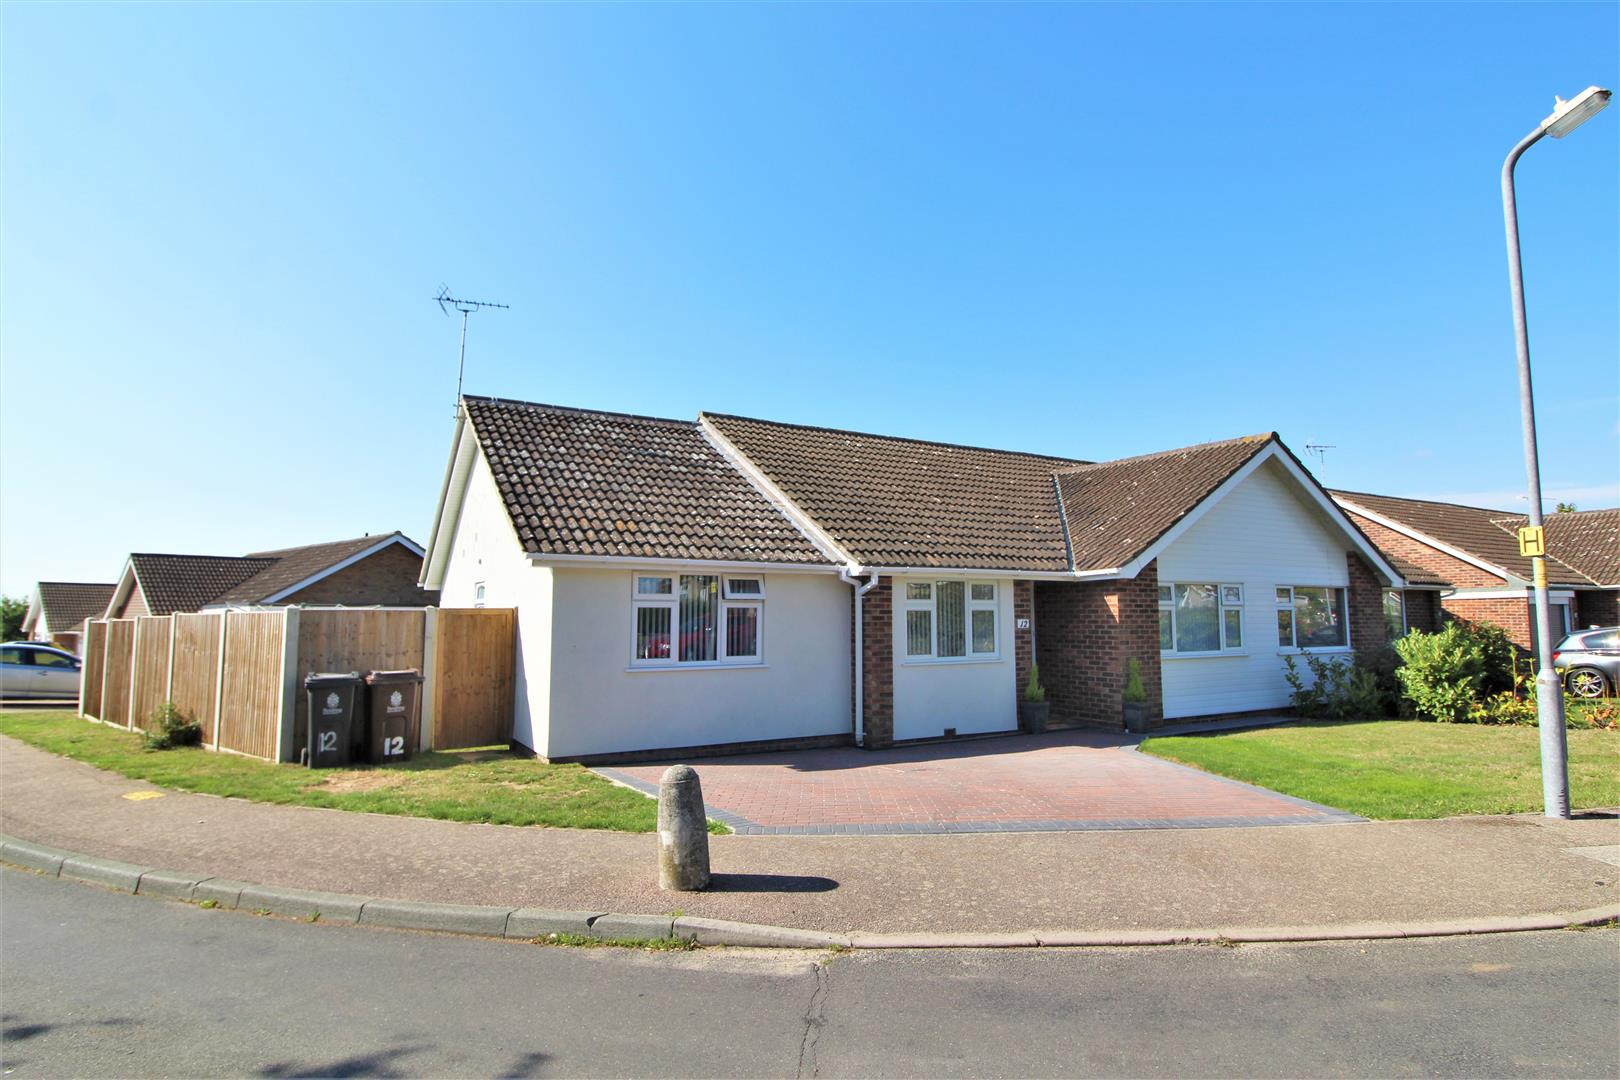 Branscombe Close, Frinton-On-Sea, Essex, CO13 9LE